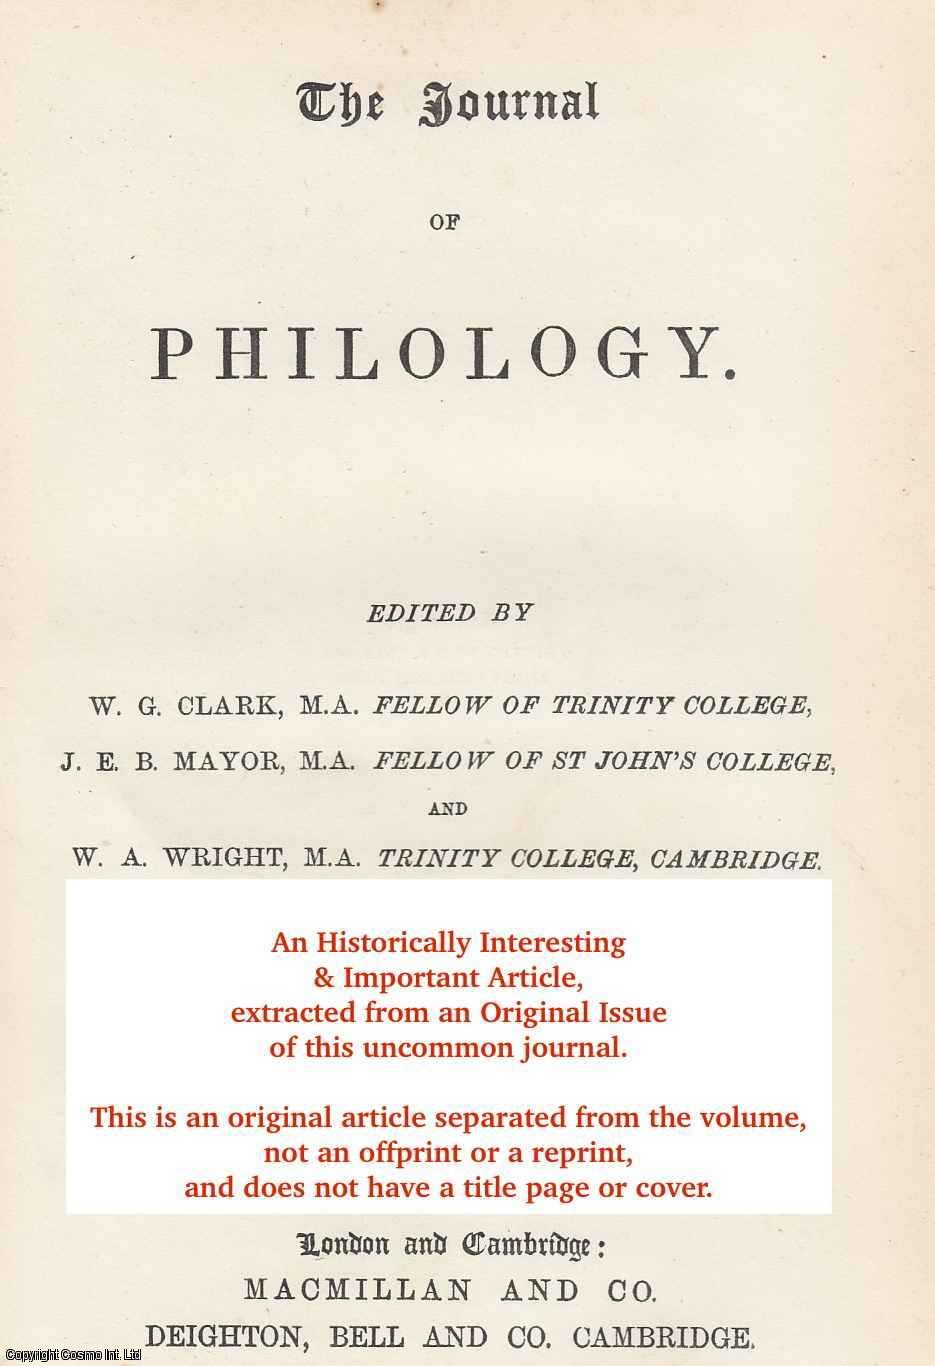 FIELD, F. - Biology and Social Science. An original article from the The Journal of Philology 1882.